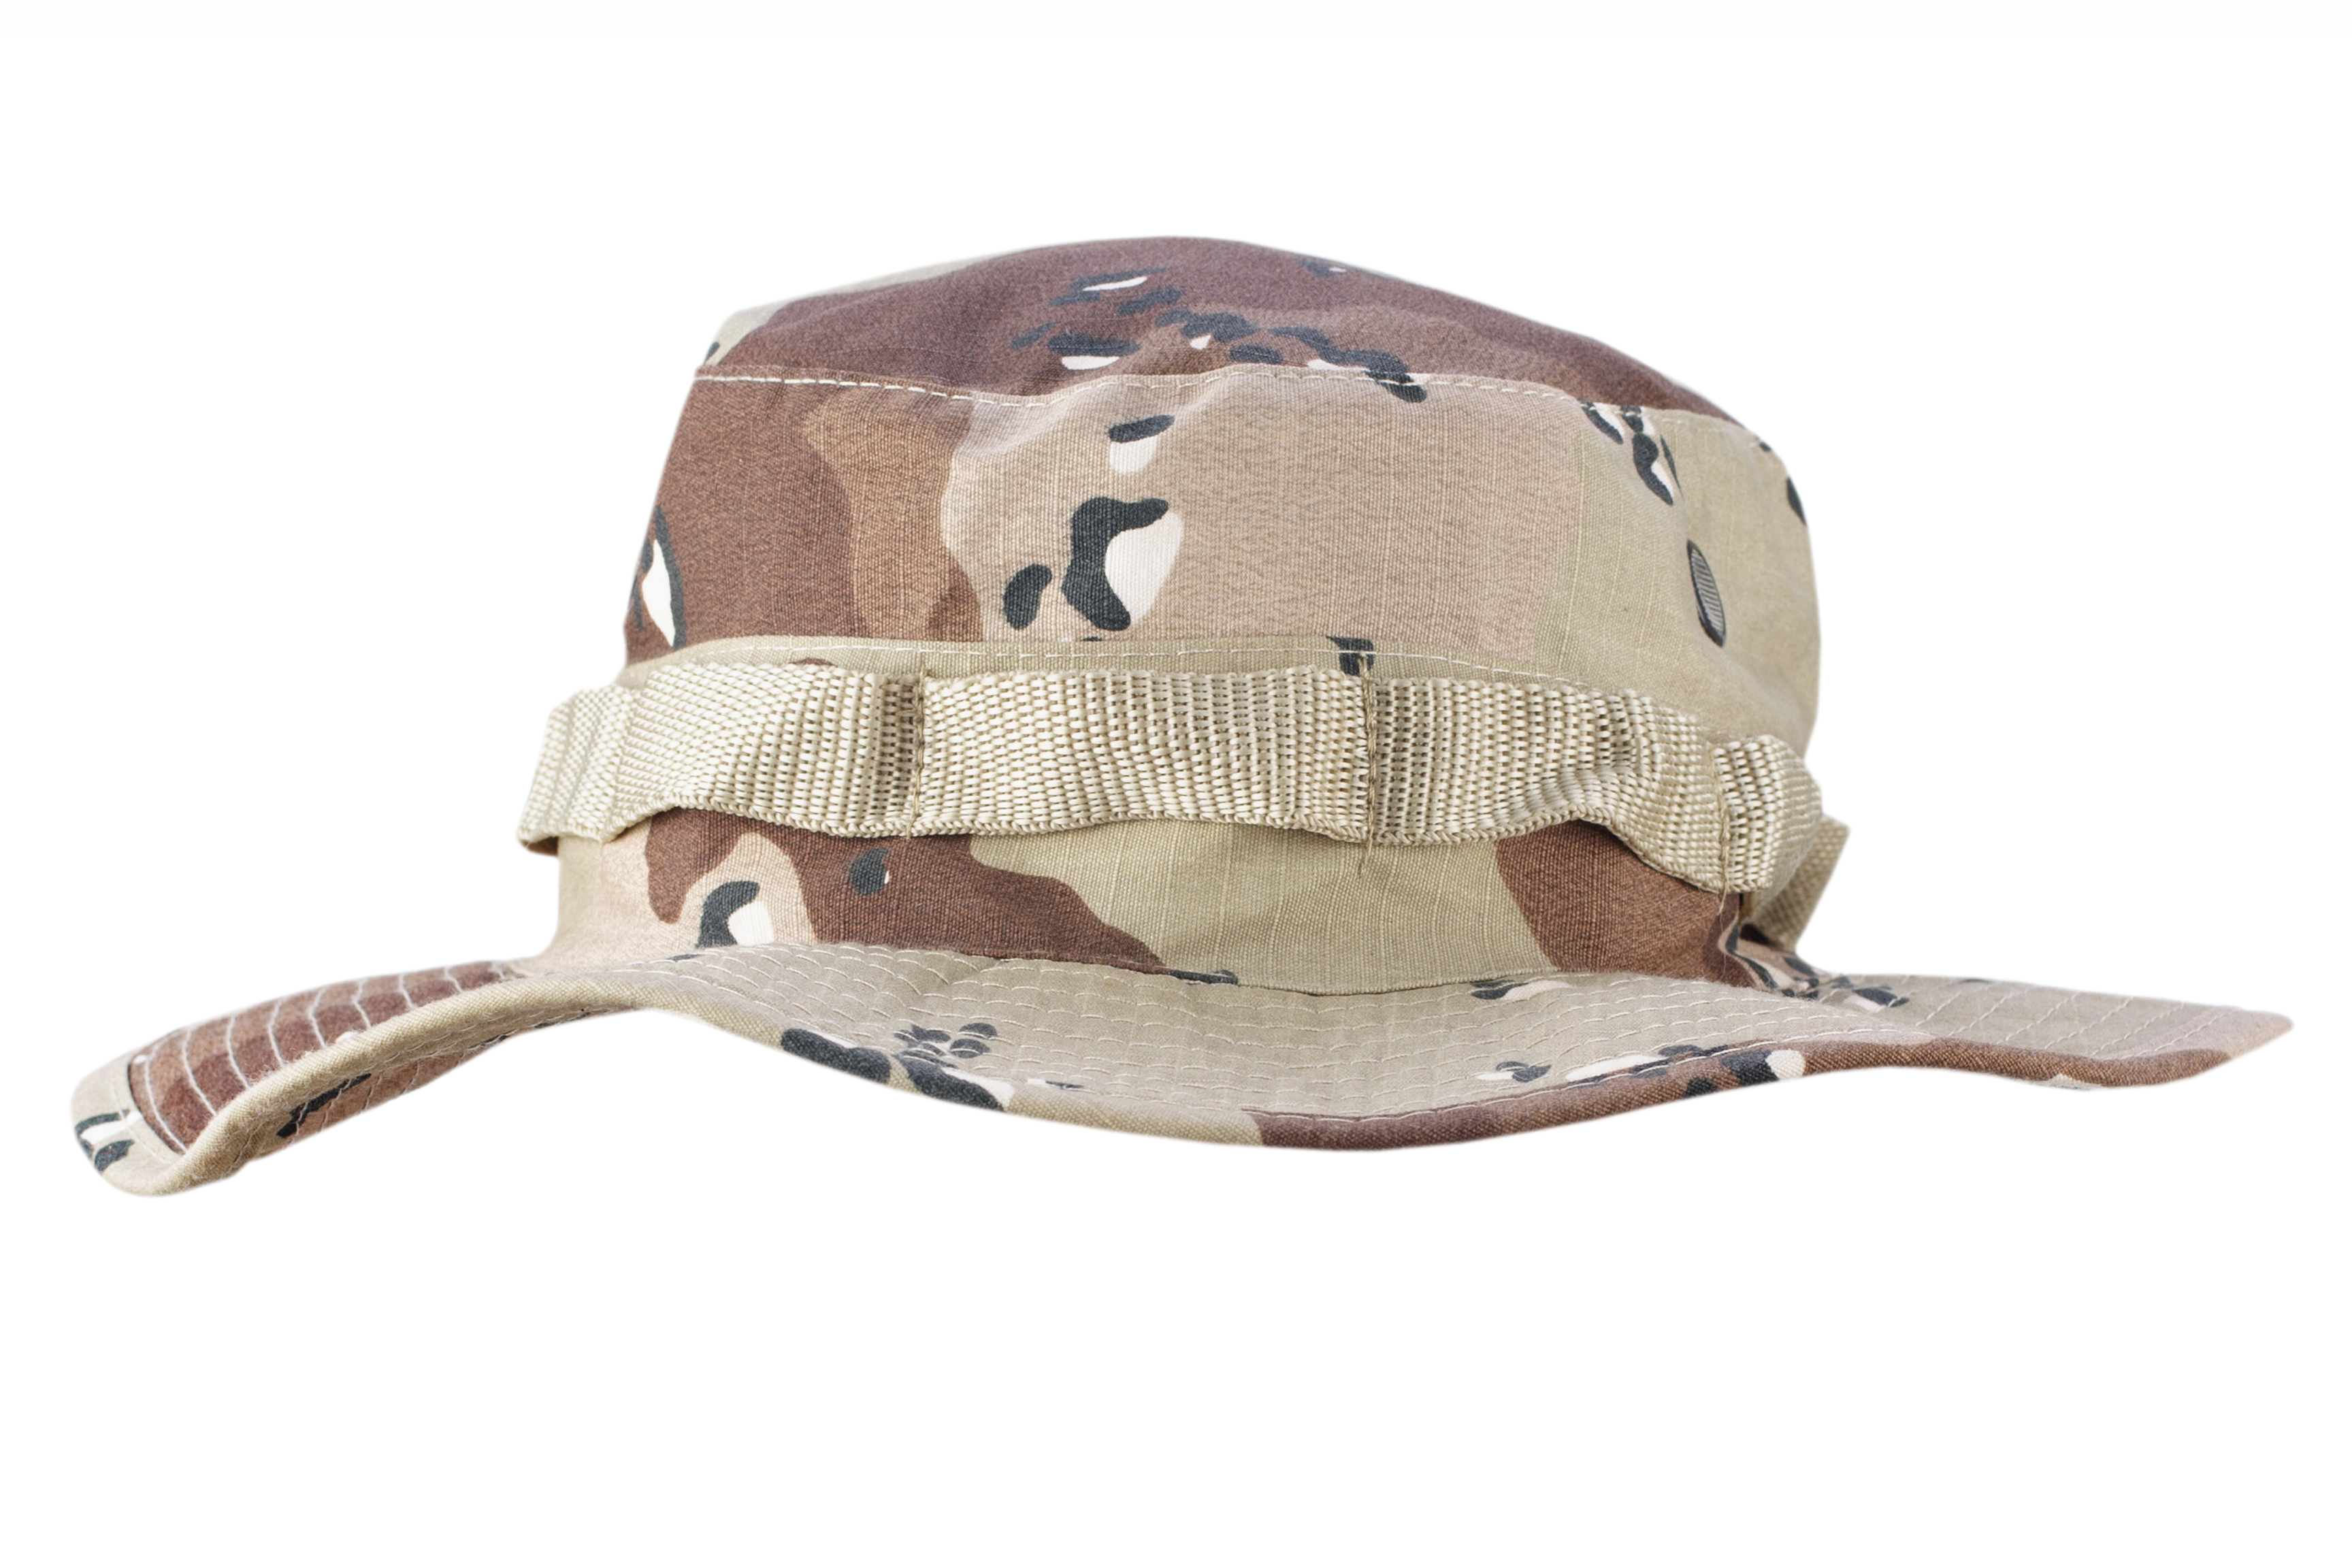 Bespoke military hats